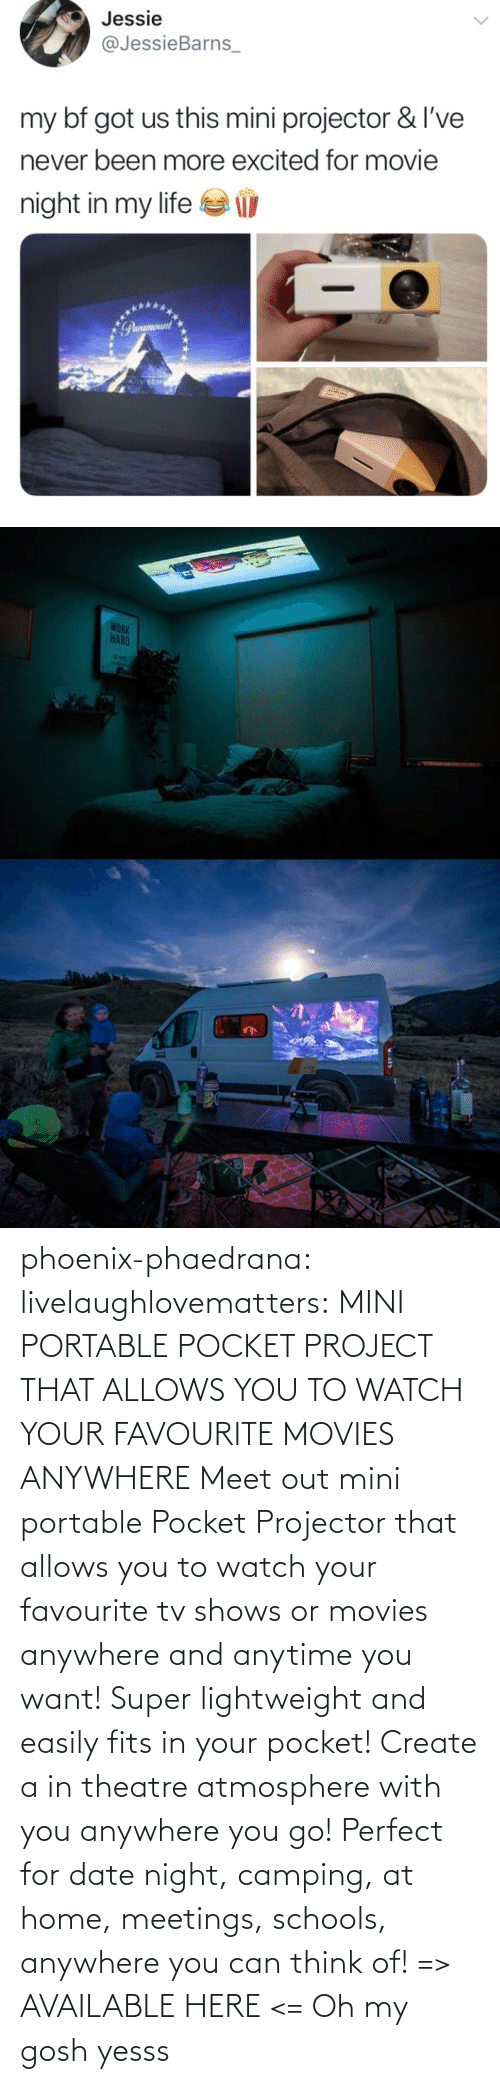 Easily: phoenix-phaedrana: livelaughlovematters:  MINI PORTABLE POCKET PROJECT THAT ALLOWS YOU TO WATCH YOUR FAVOURITE MOVIES ANYWHERE Meet out mini portable Pocket Projector that allows you to watch your favourite tv shows or movies anywhere and anytime you want! Super lightweight and easily fits in your pocket! Create a in theatre atmosphere with you anywhere you go! Perfect for date night, camping, at home, meetings, schools, anywhere you can think of! => AVAILABLE HERE <=  Oh my gosh yesss